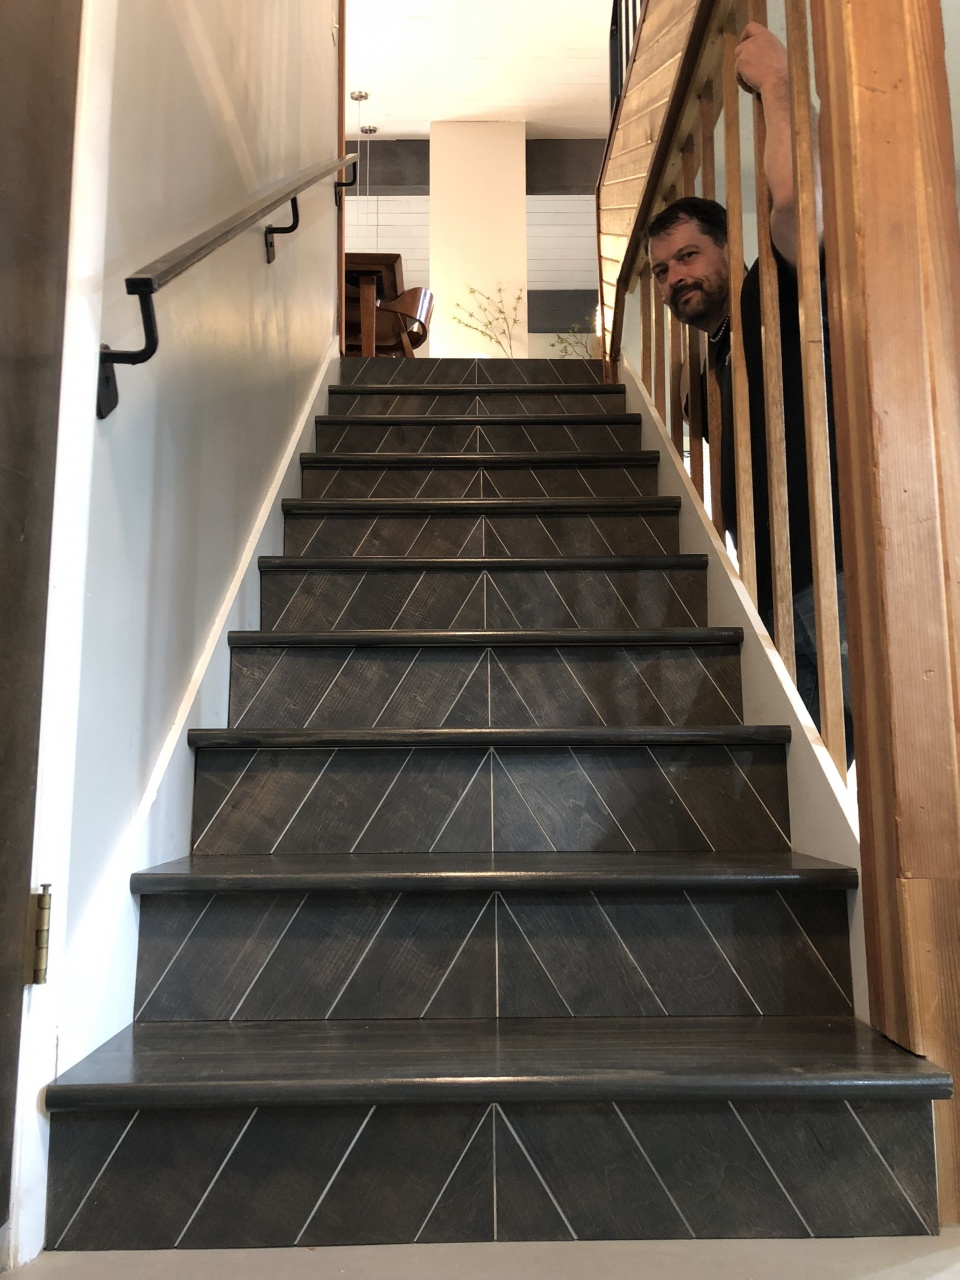 Image of: Vinyl Stairs Treads And Risers Copycat Fixer Upper Stair Risers In 2019 Equalmarriagefl Vinyl From Vinyl Stairs Treads And Risers Pictures